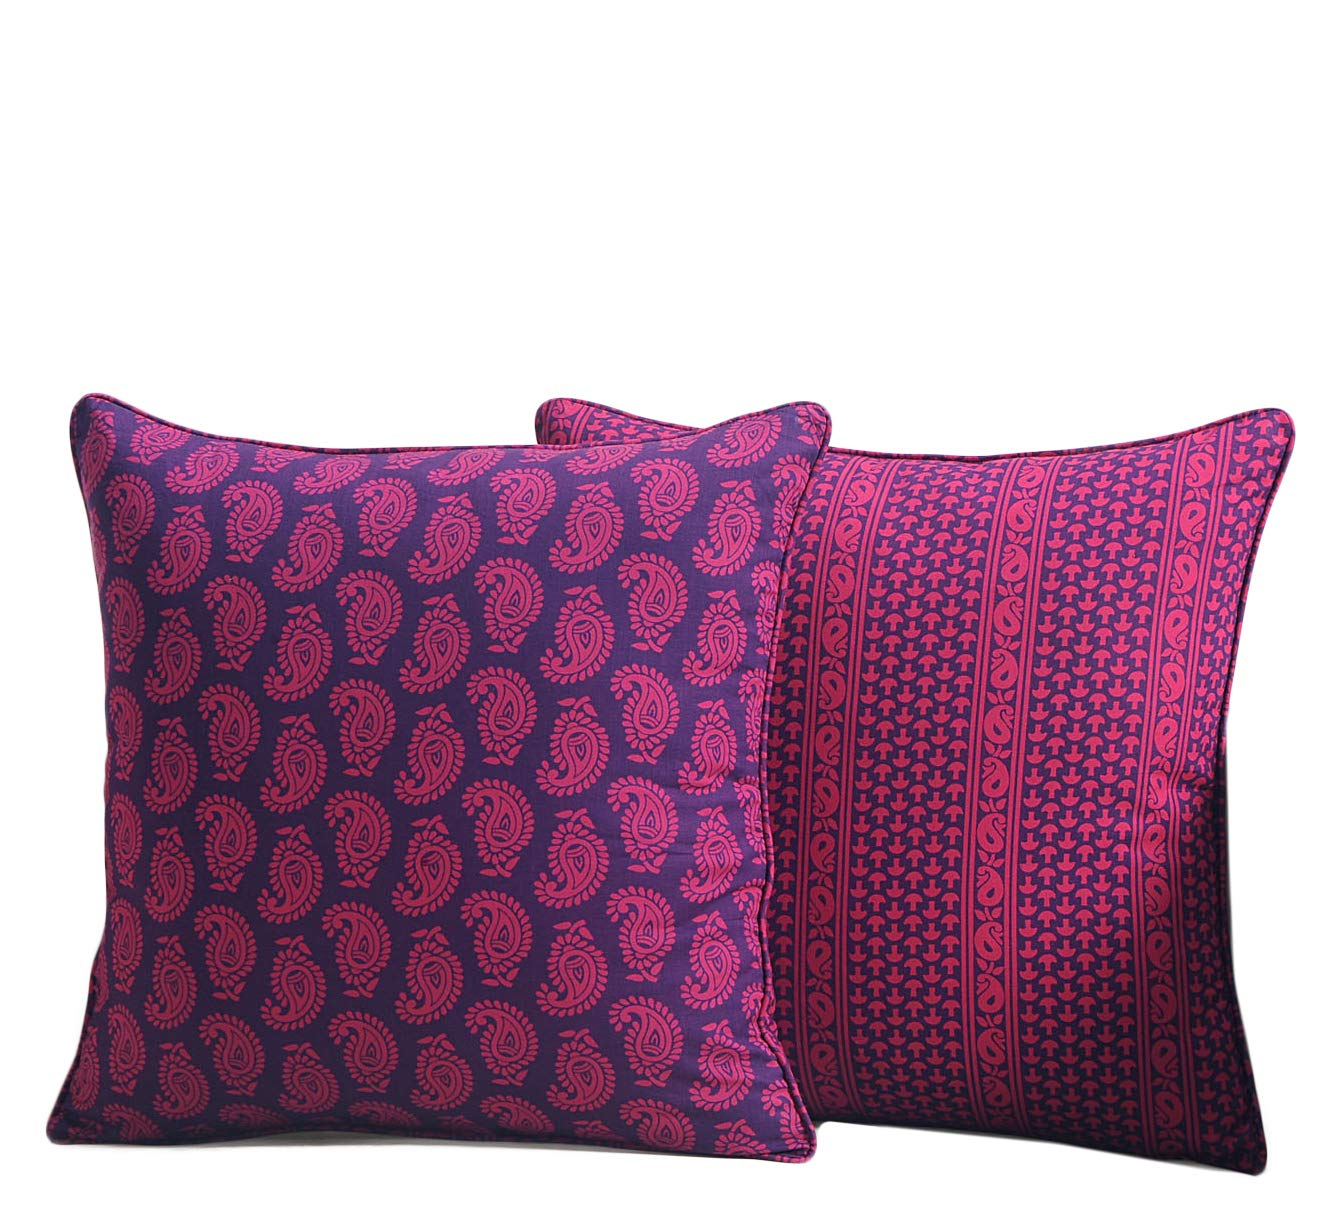 ShalinIndia Paisley Printed Cushion Cover Set With 2 Throw Pillow Covers Cotton Poplin Fabric 18x 18 Inch Swayam MN-CP182-2601